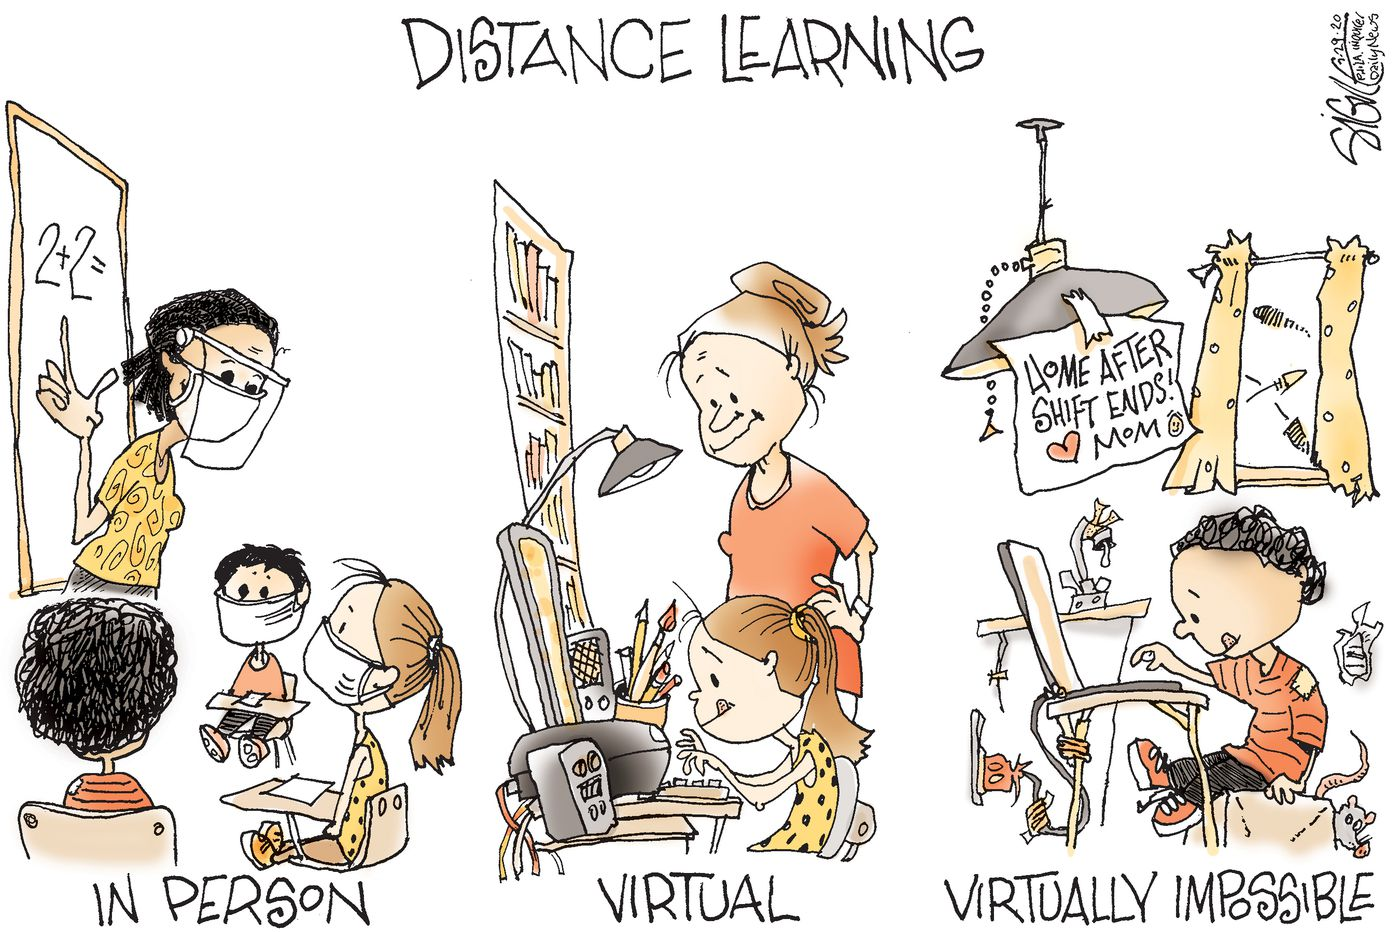 Political Cartoon: Virtually learning how to reopen schools